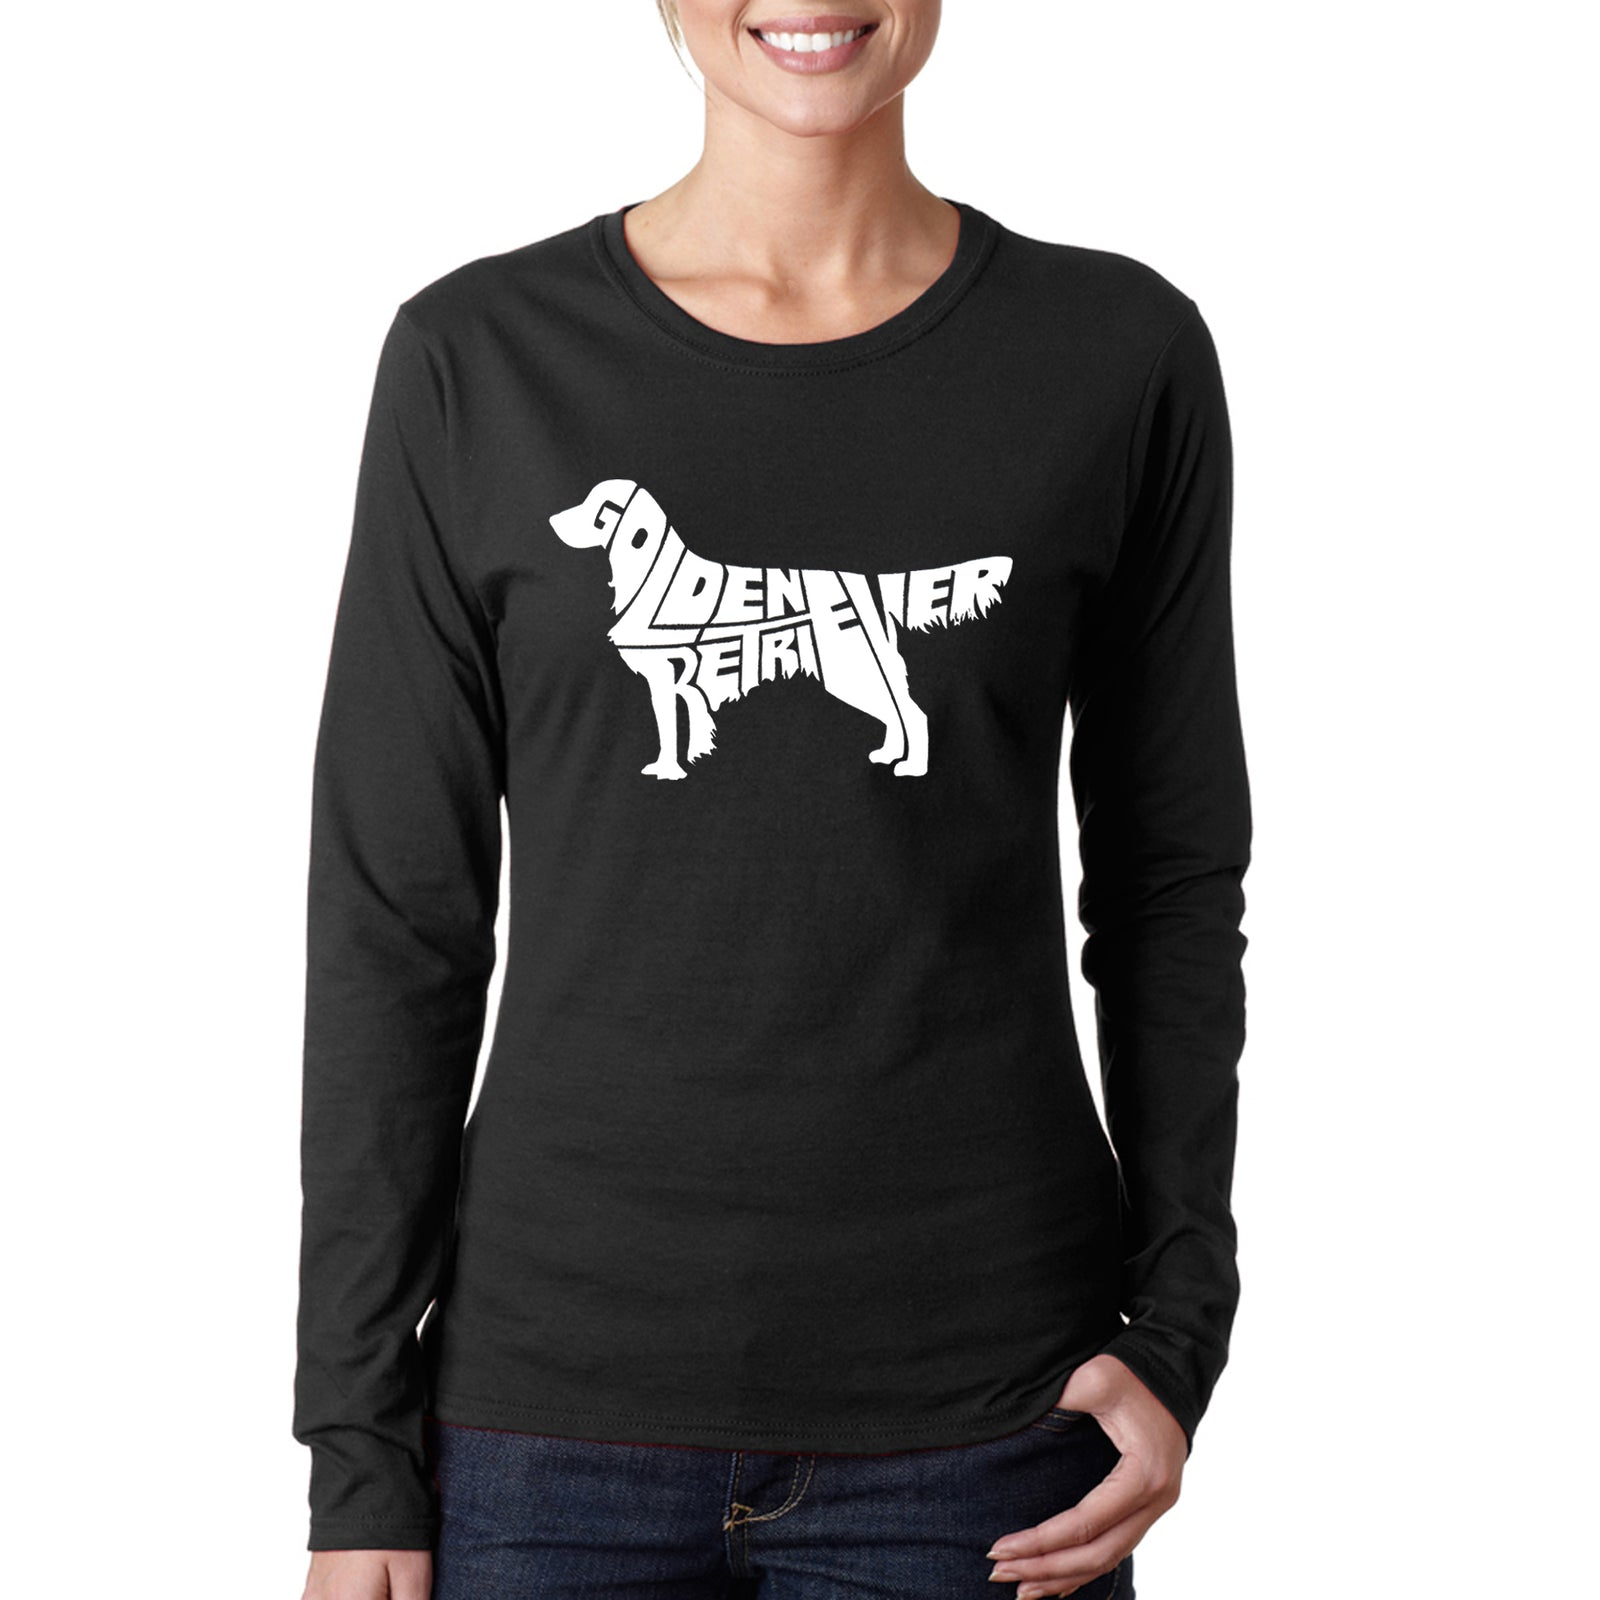 Women's Long Sleeve T-Shirt - Golden Retreiver